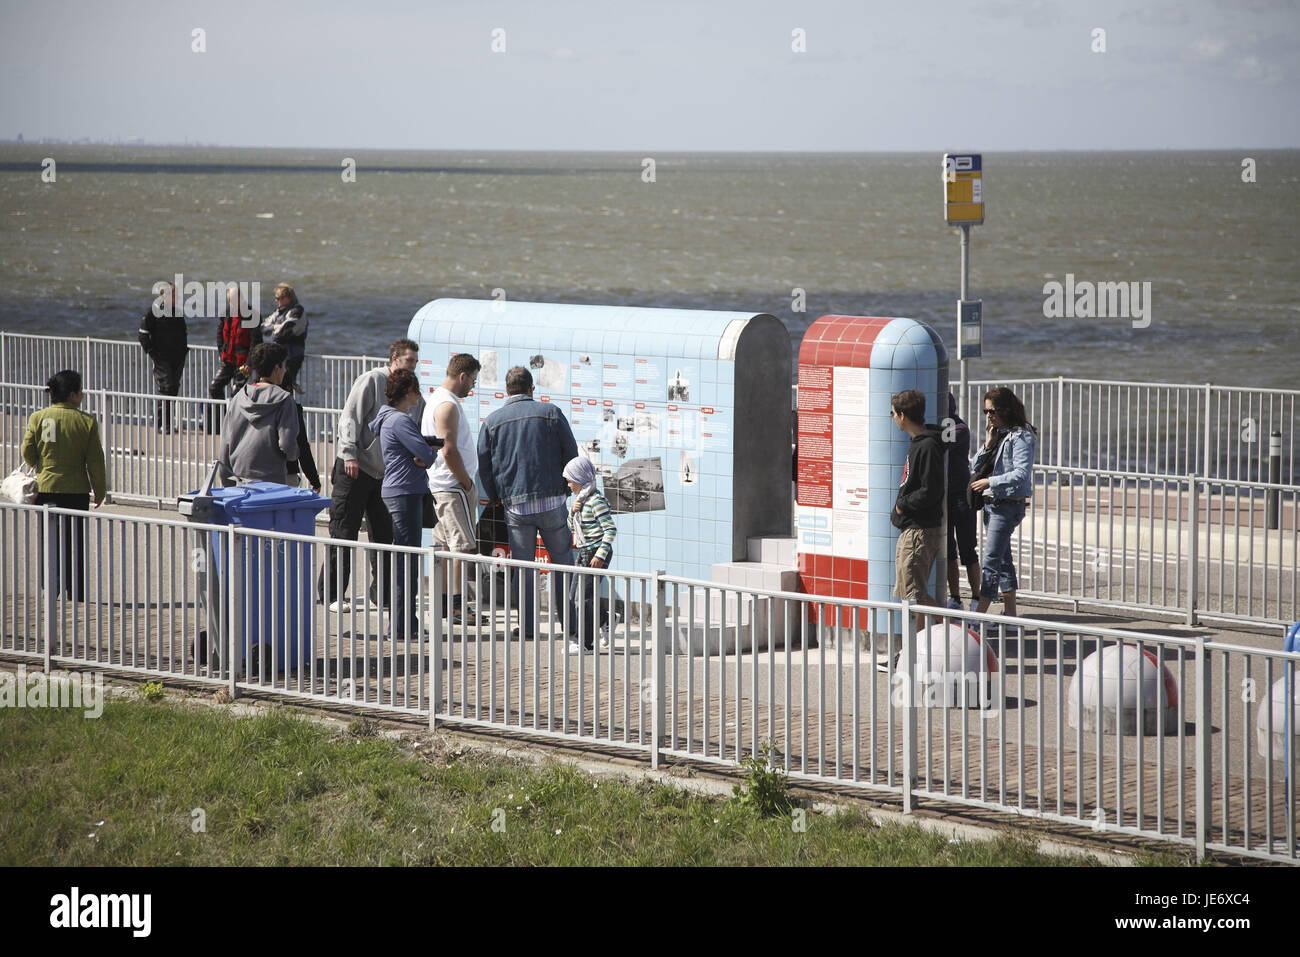 The Netherlands, conclusion dyke 'Afsluitdijk', tourists, - Stock Image